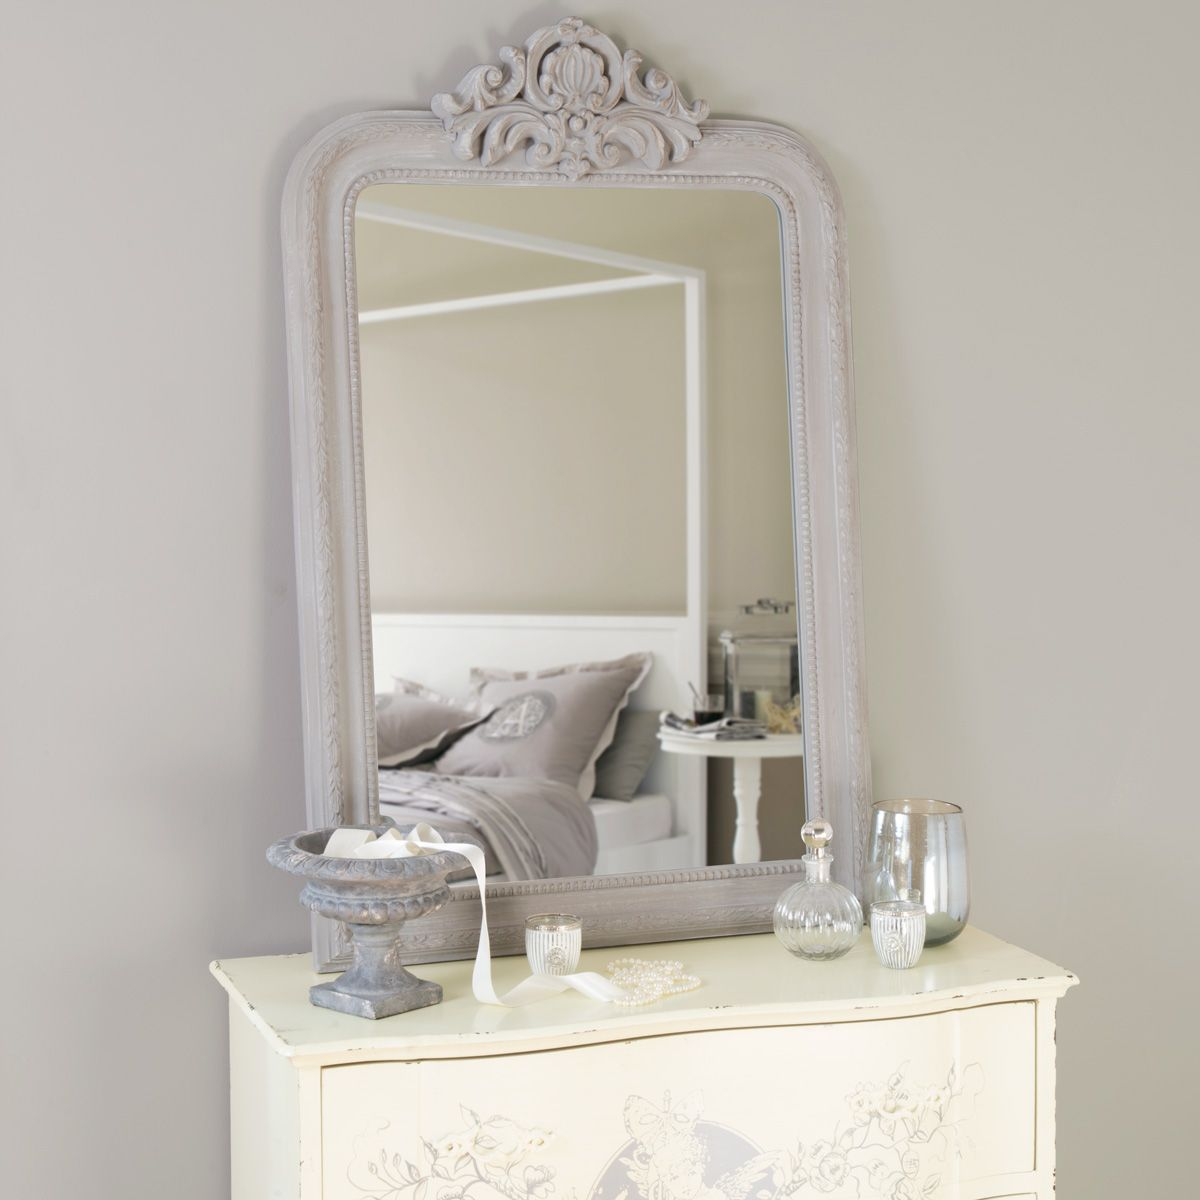 miroir altesse gris maisons du monde coiffeuse pinterest pol roger wood mirror and vanities. Black Bedroom Furniture Sets. Home Design Ideas